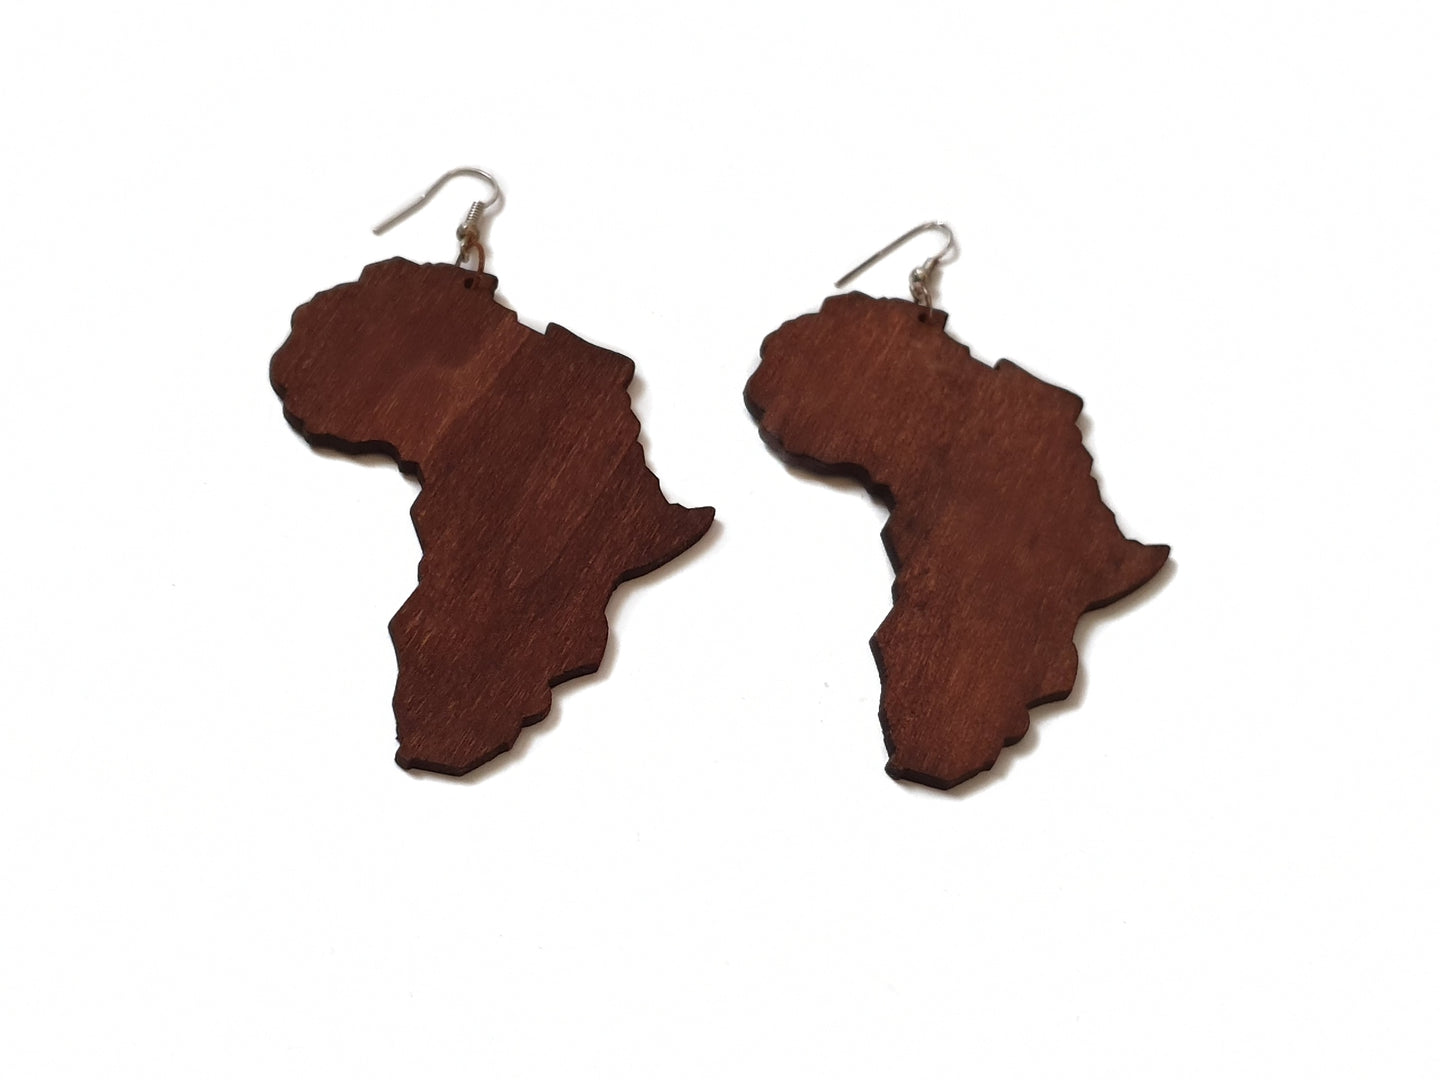 Map of Africa wooden earrings in dark brown wood with silver tone hook on white background